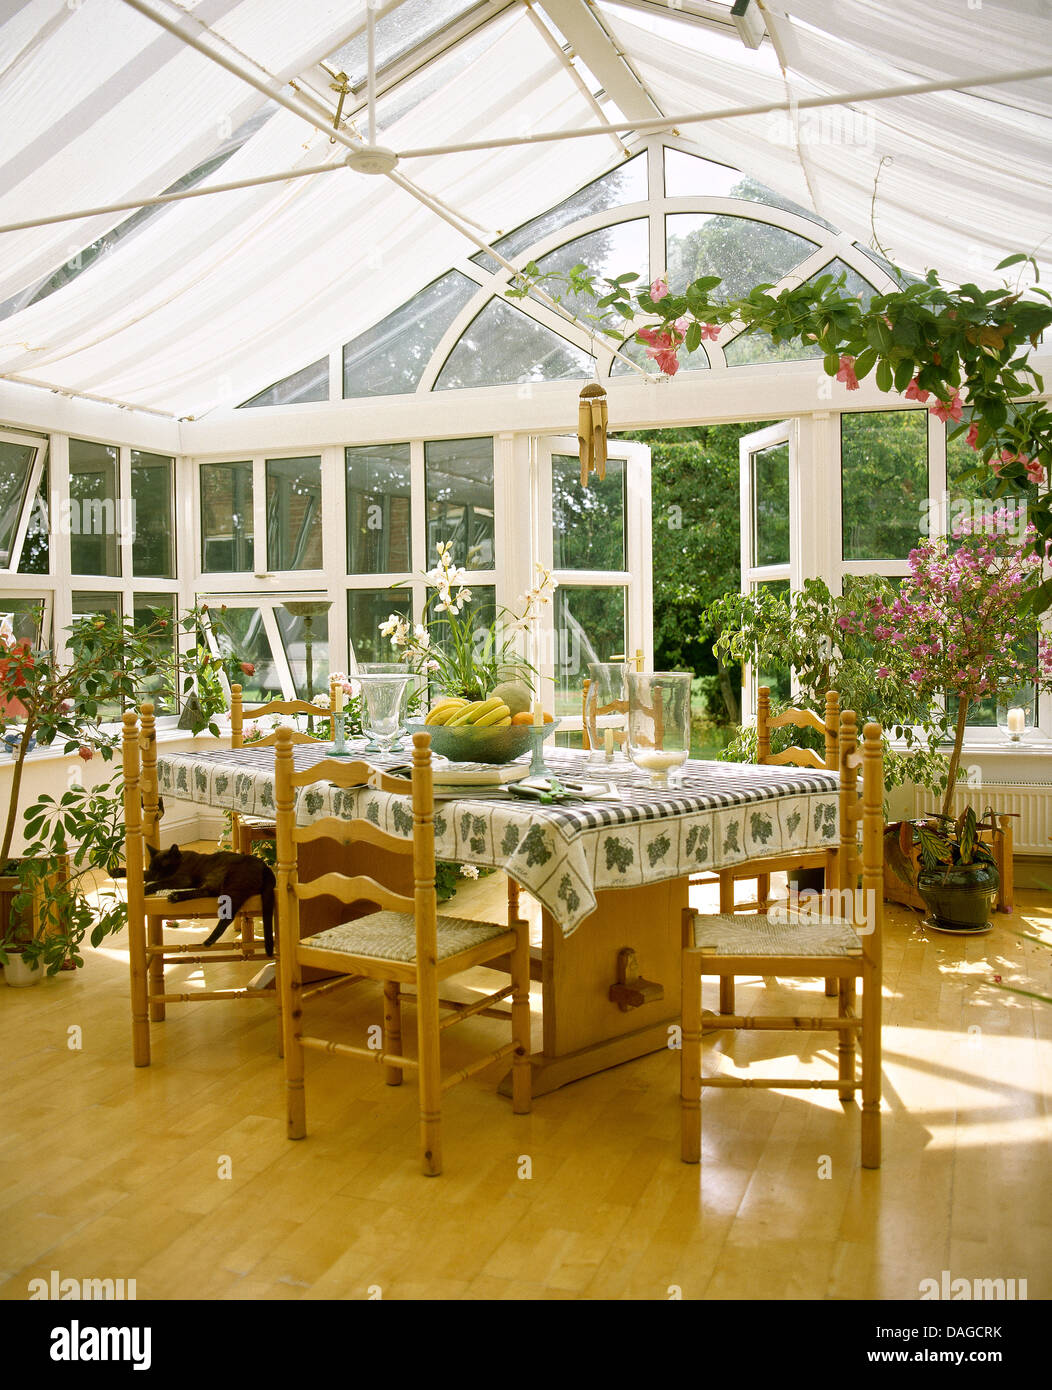 Ladder Back Chairs At Wooden Table With Green+white Cloth In Conservatory  Dining Room With Wooden Floor And Climbing Plants